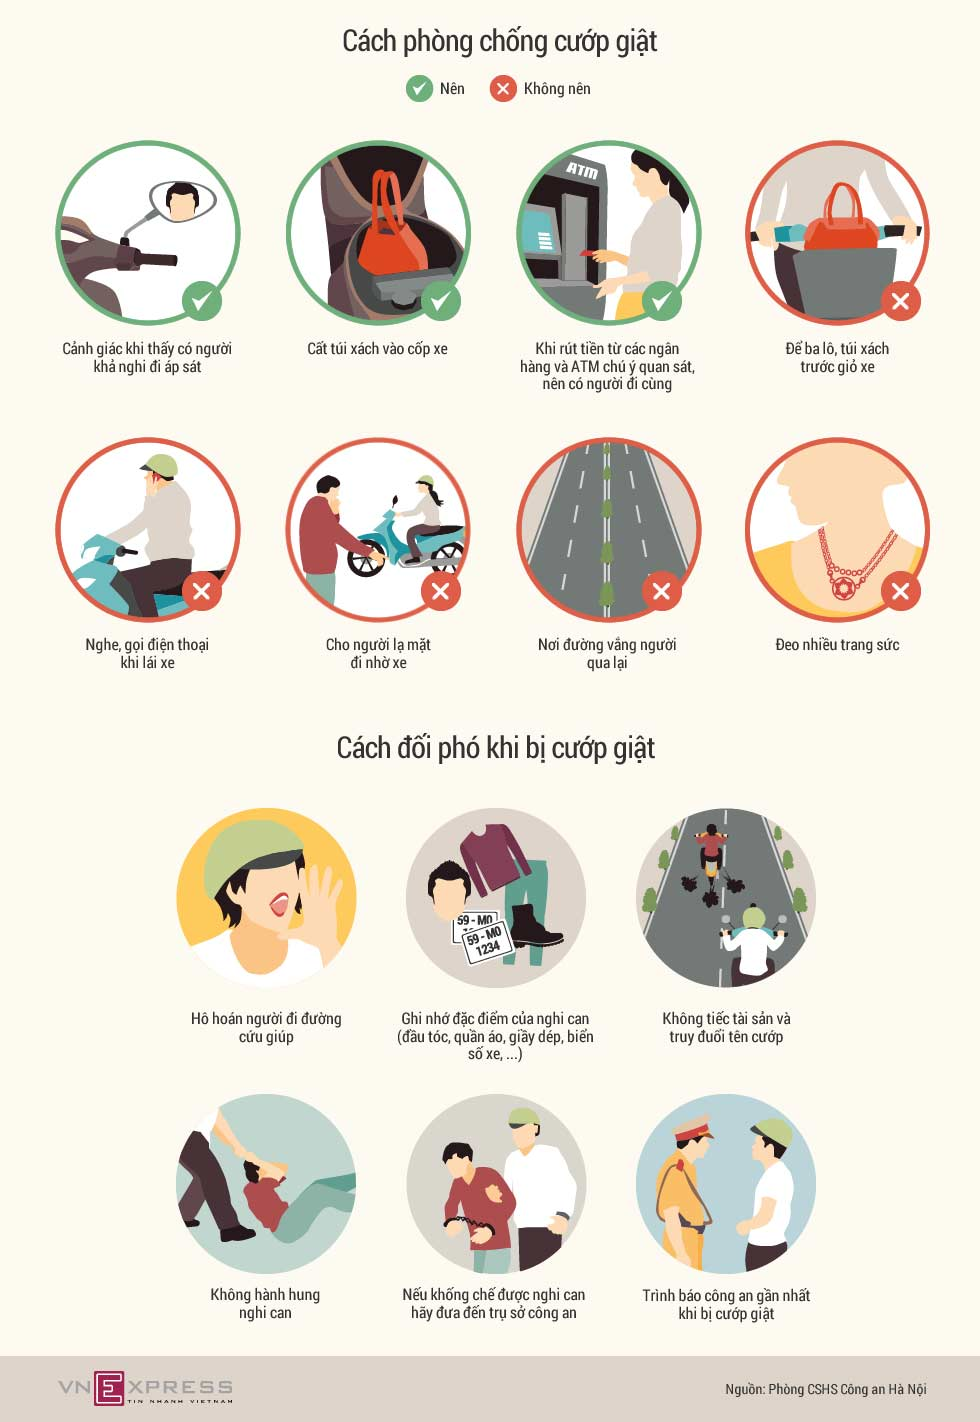 infographic: cach phong chong cuop giat tren duong hinh anh 1